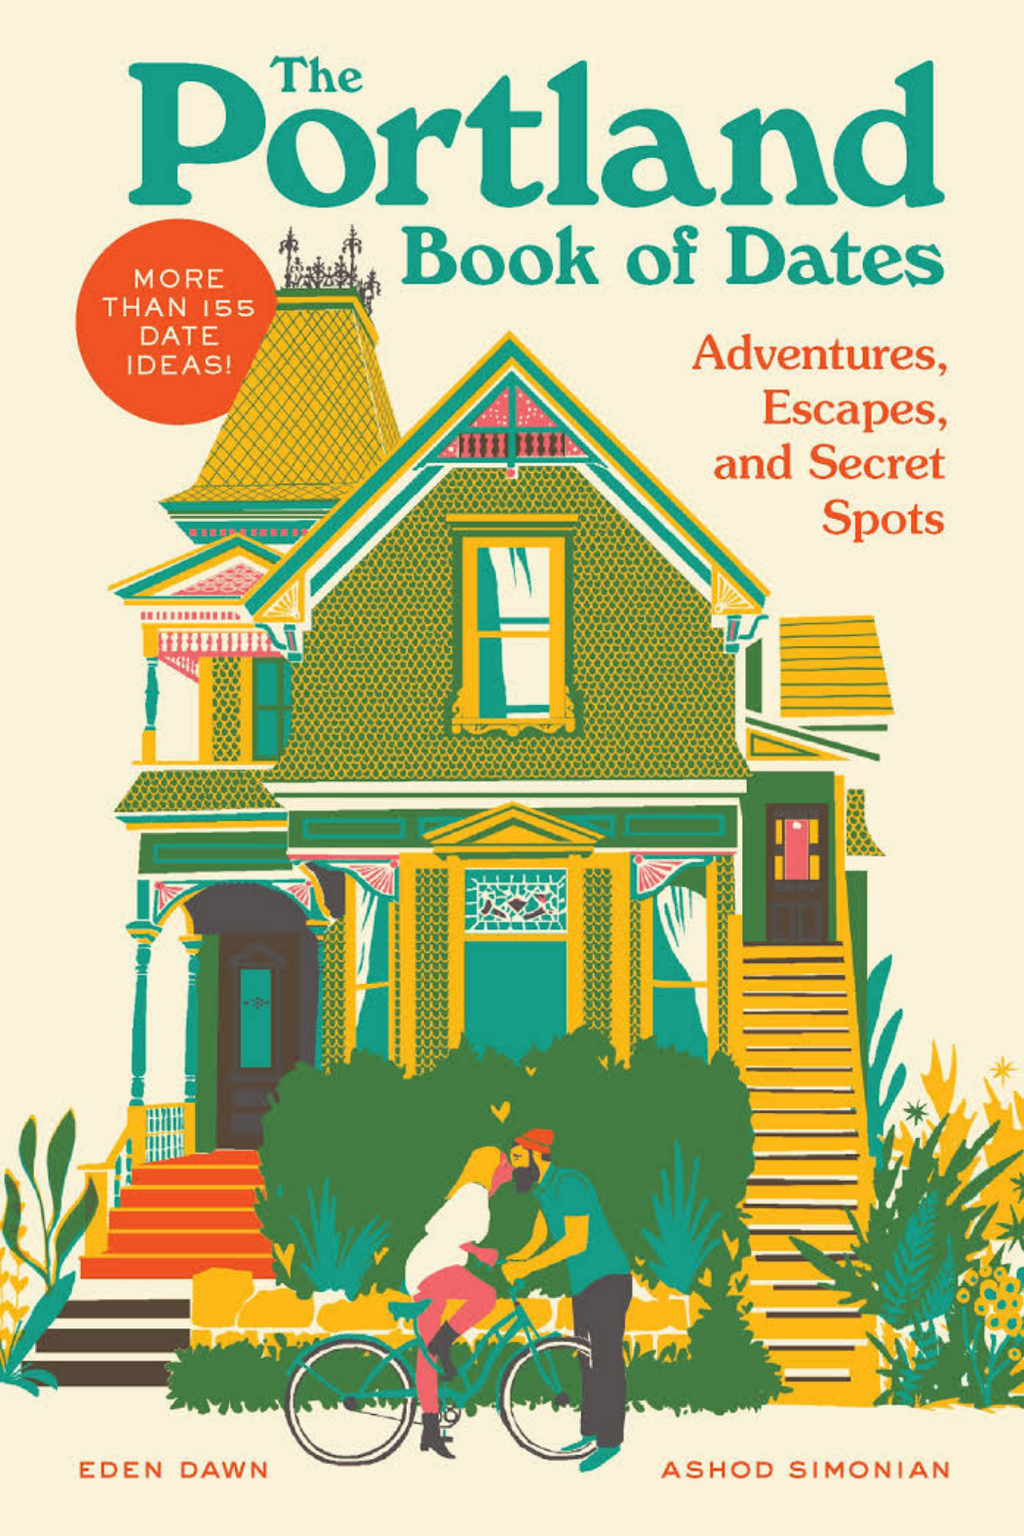 The Portland Book of Dates: Adventures, Escapes, and Secret Spots  By Eden Dawn and Ashod Simonian